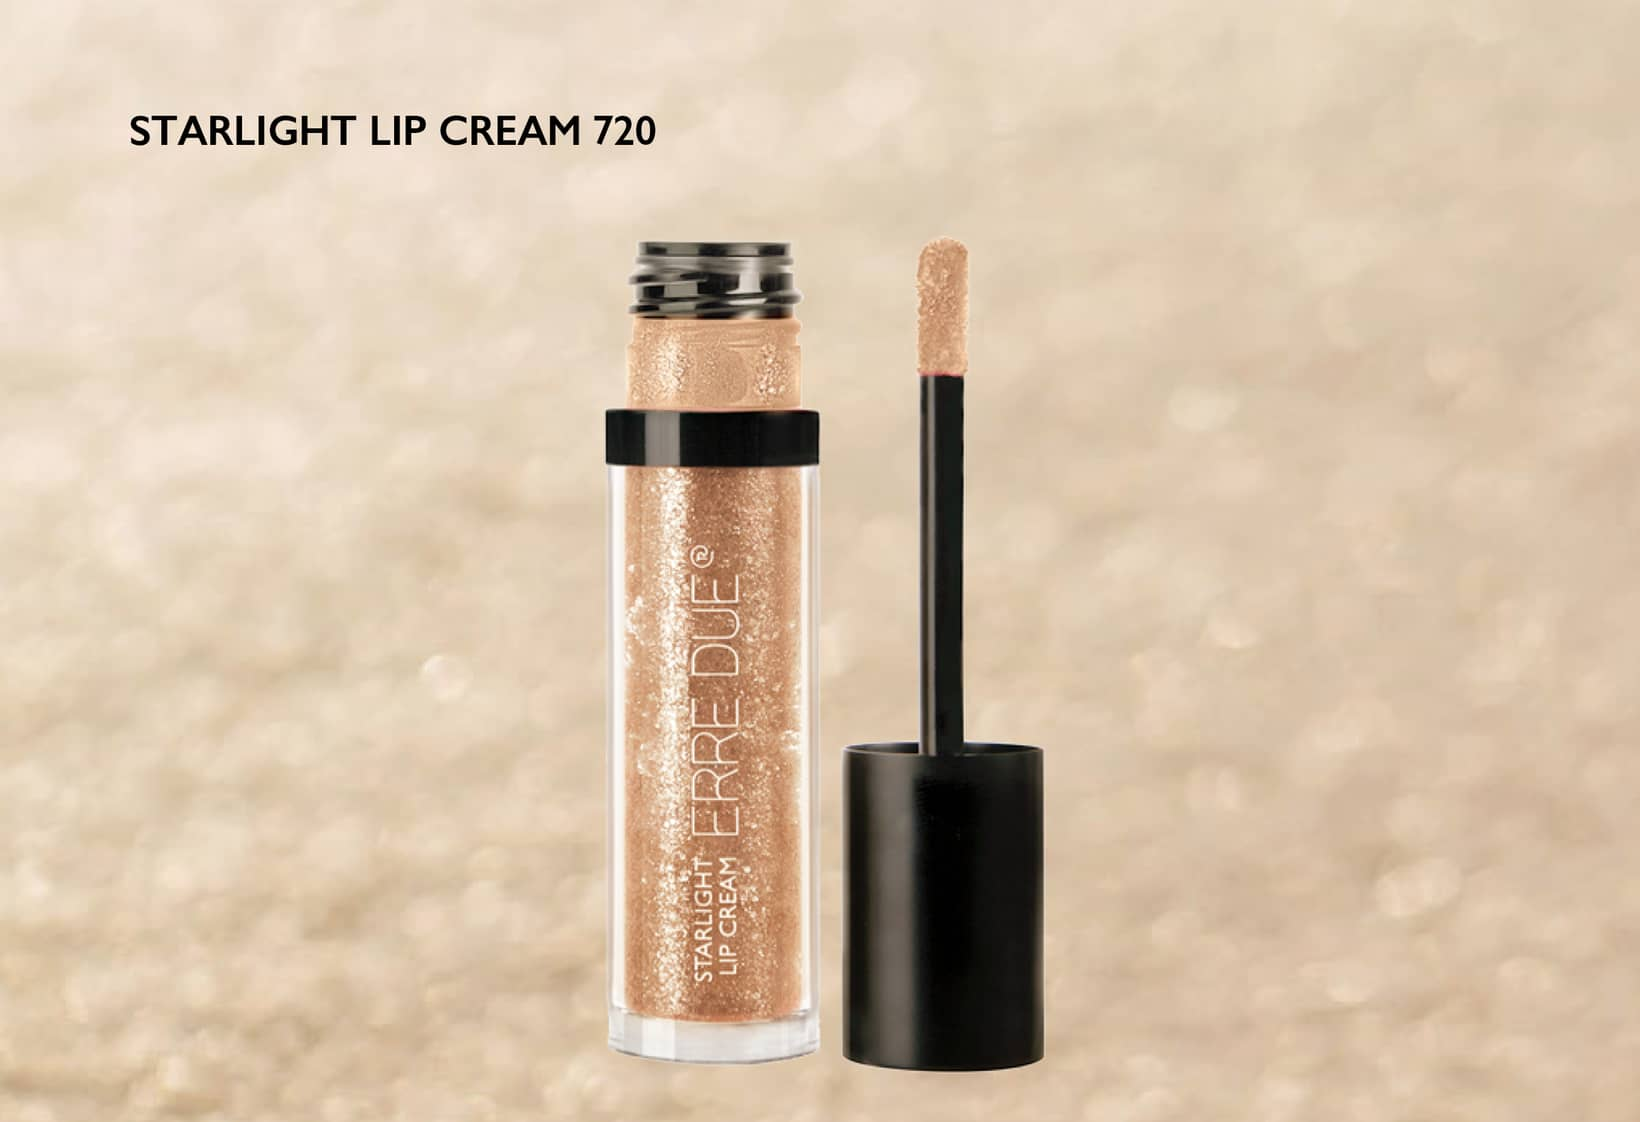 STARLIGHT LIP CREAM 720